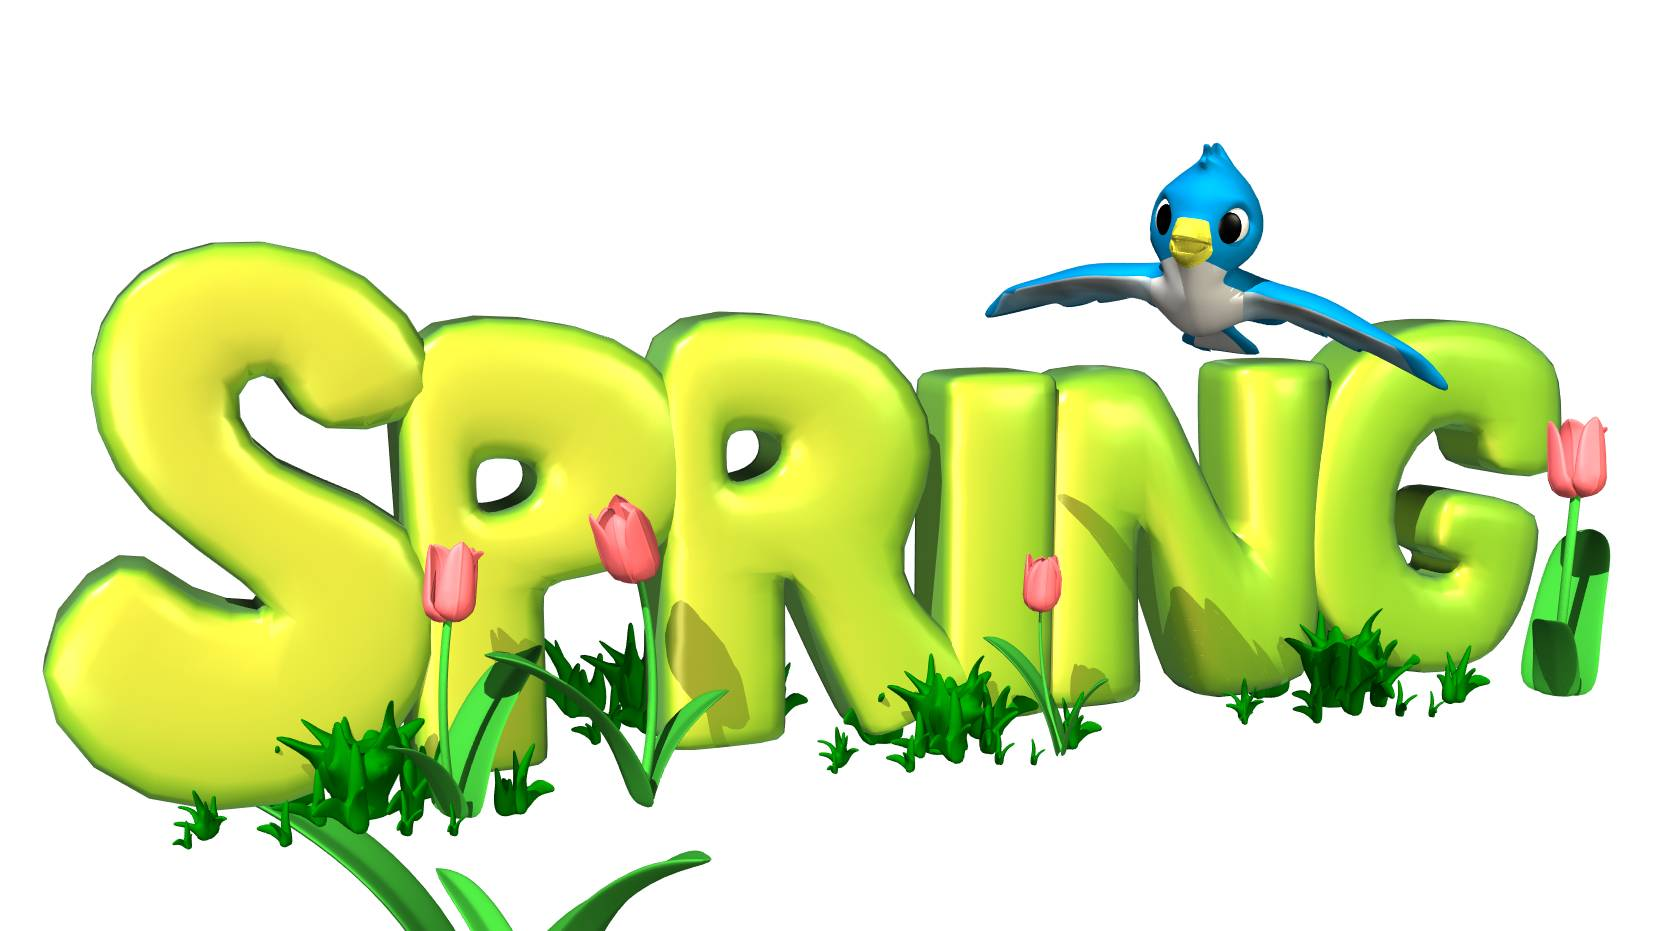 Spring pictures 2018 clipart jpg transparent stock Springtime Clipart Clip Art - Clip Art Library jpg transparent stock